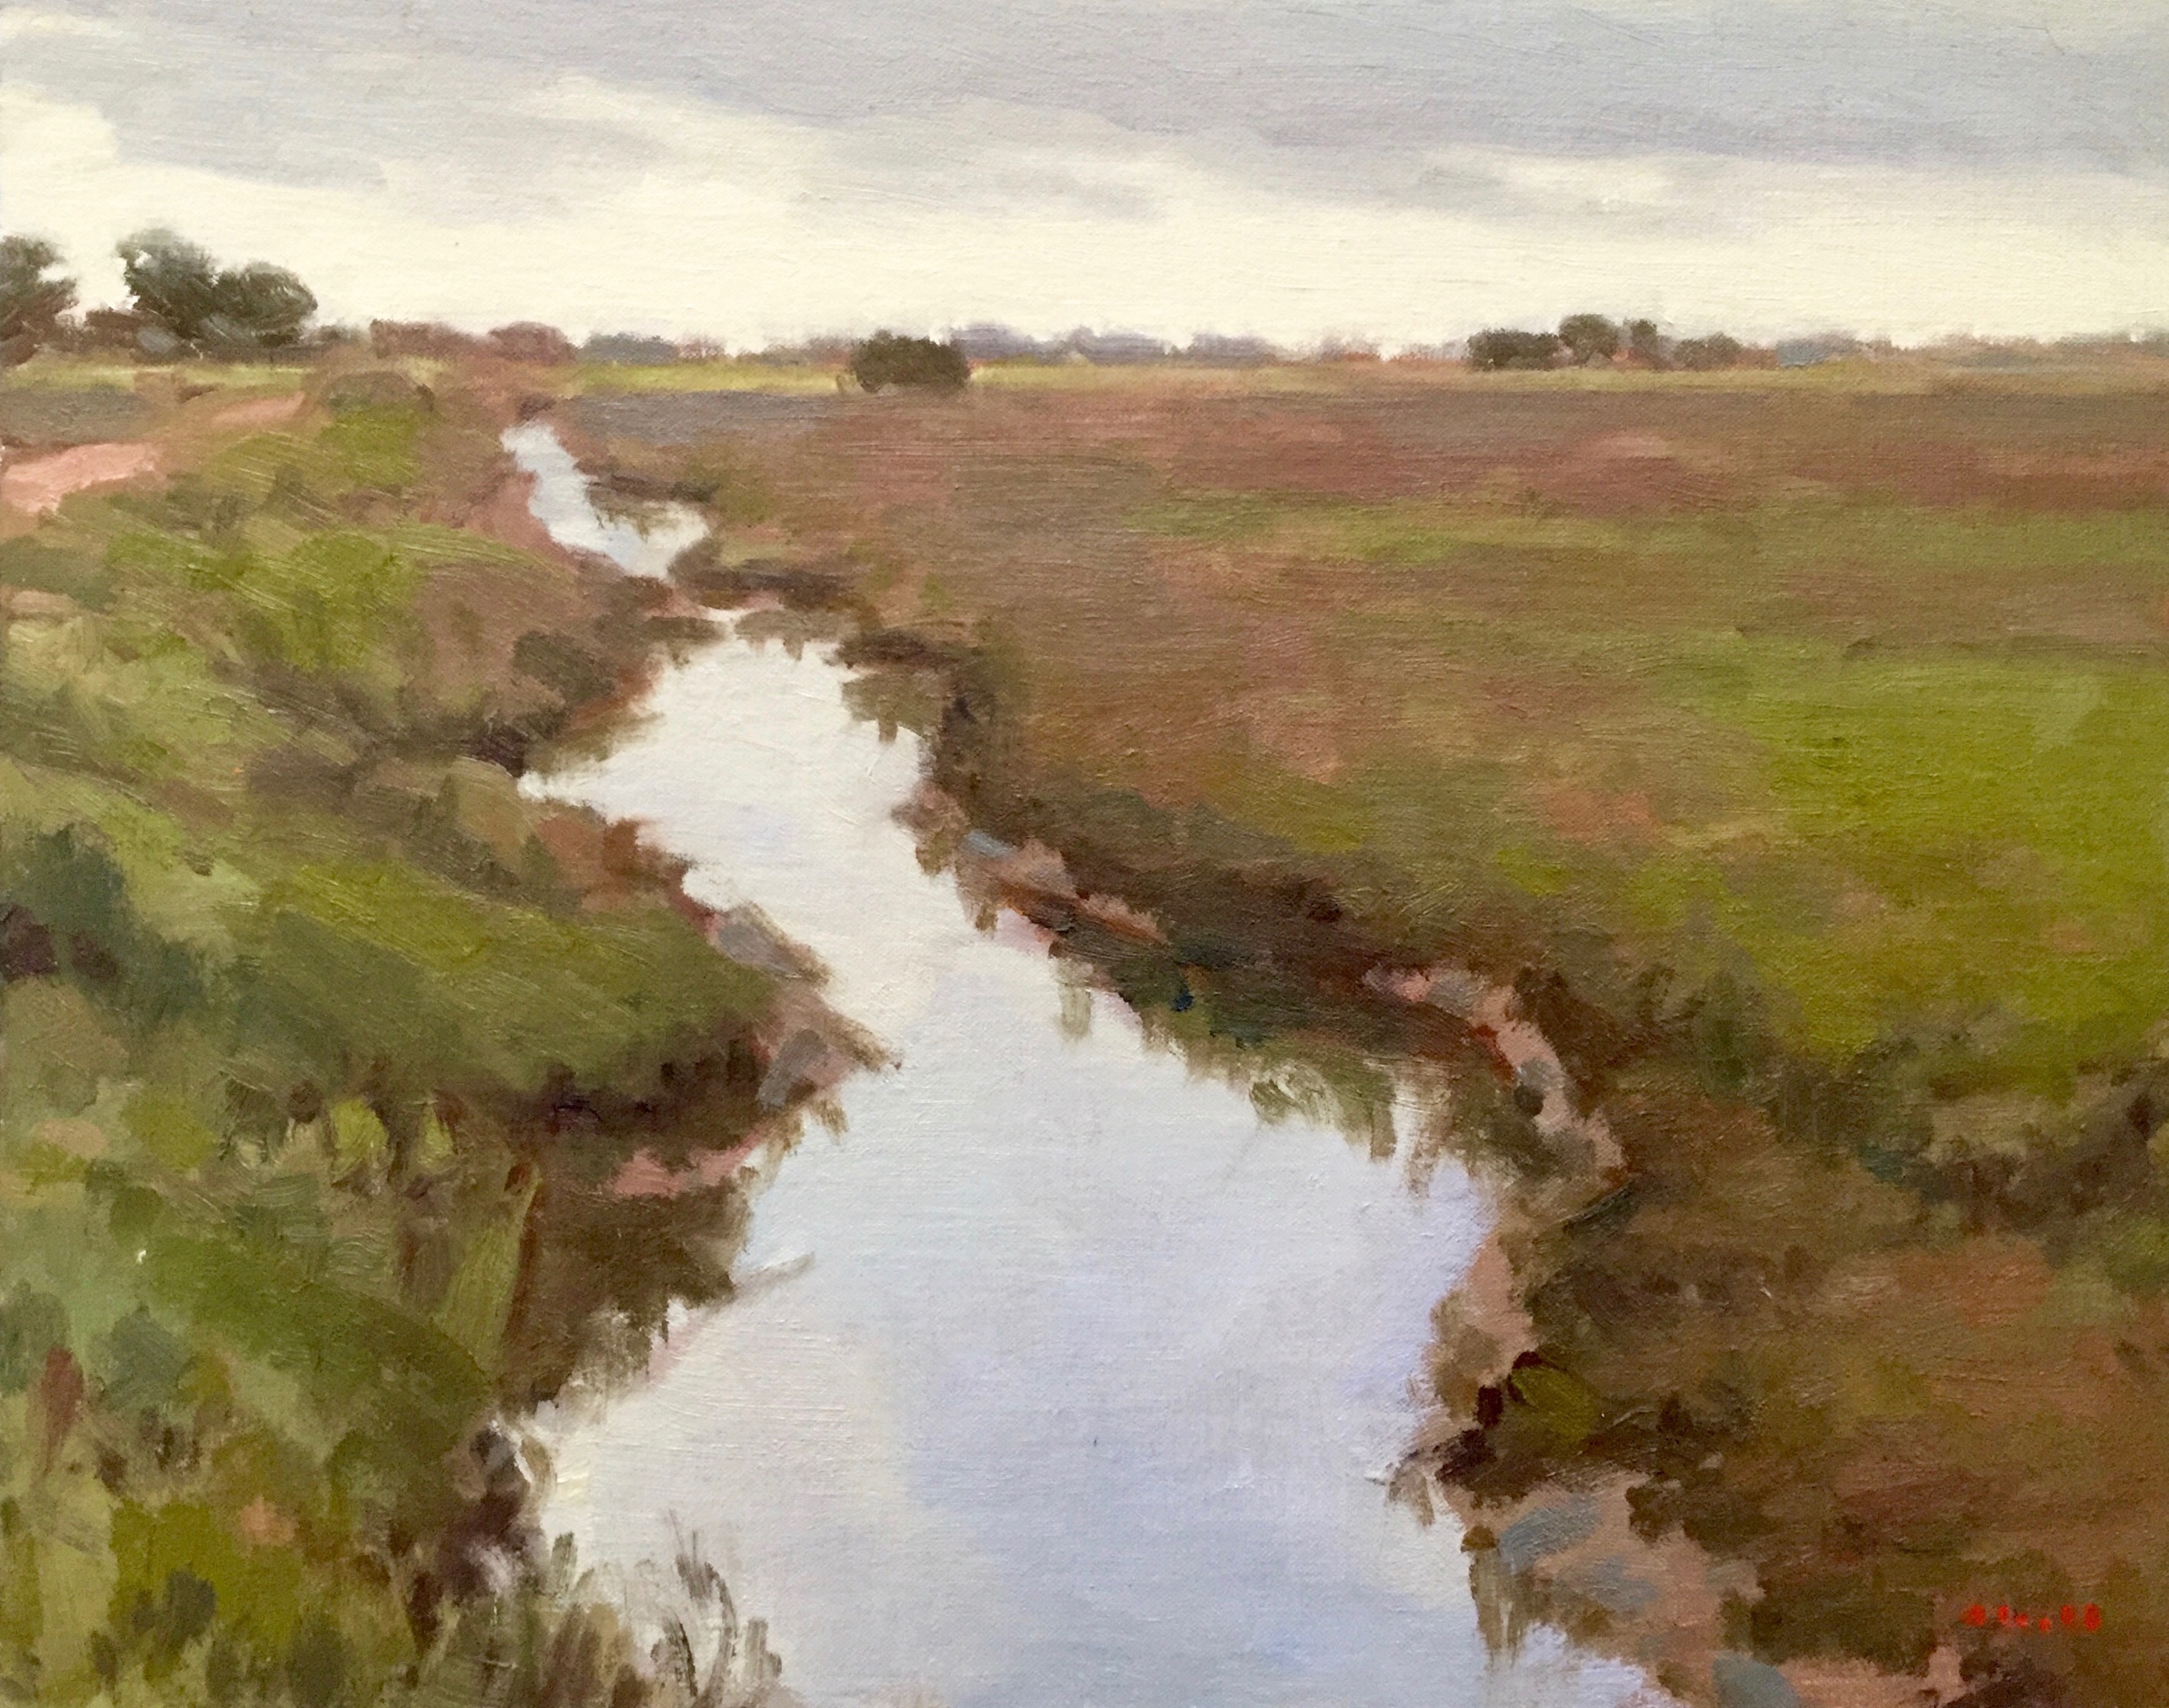 Carpinteria Slough 16x20